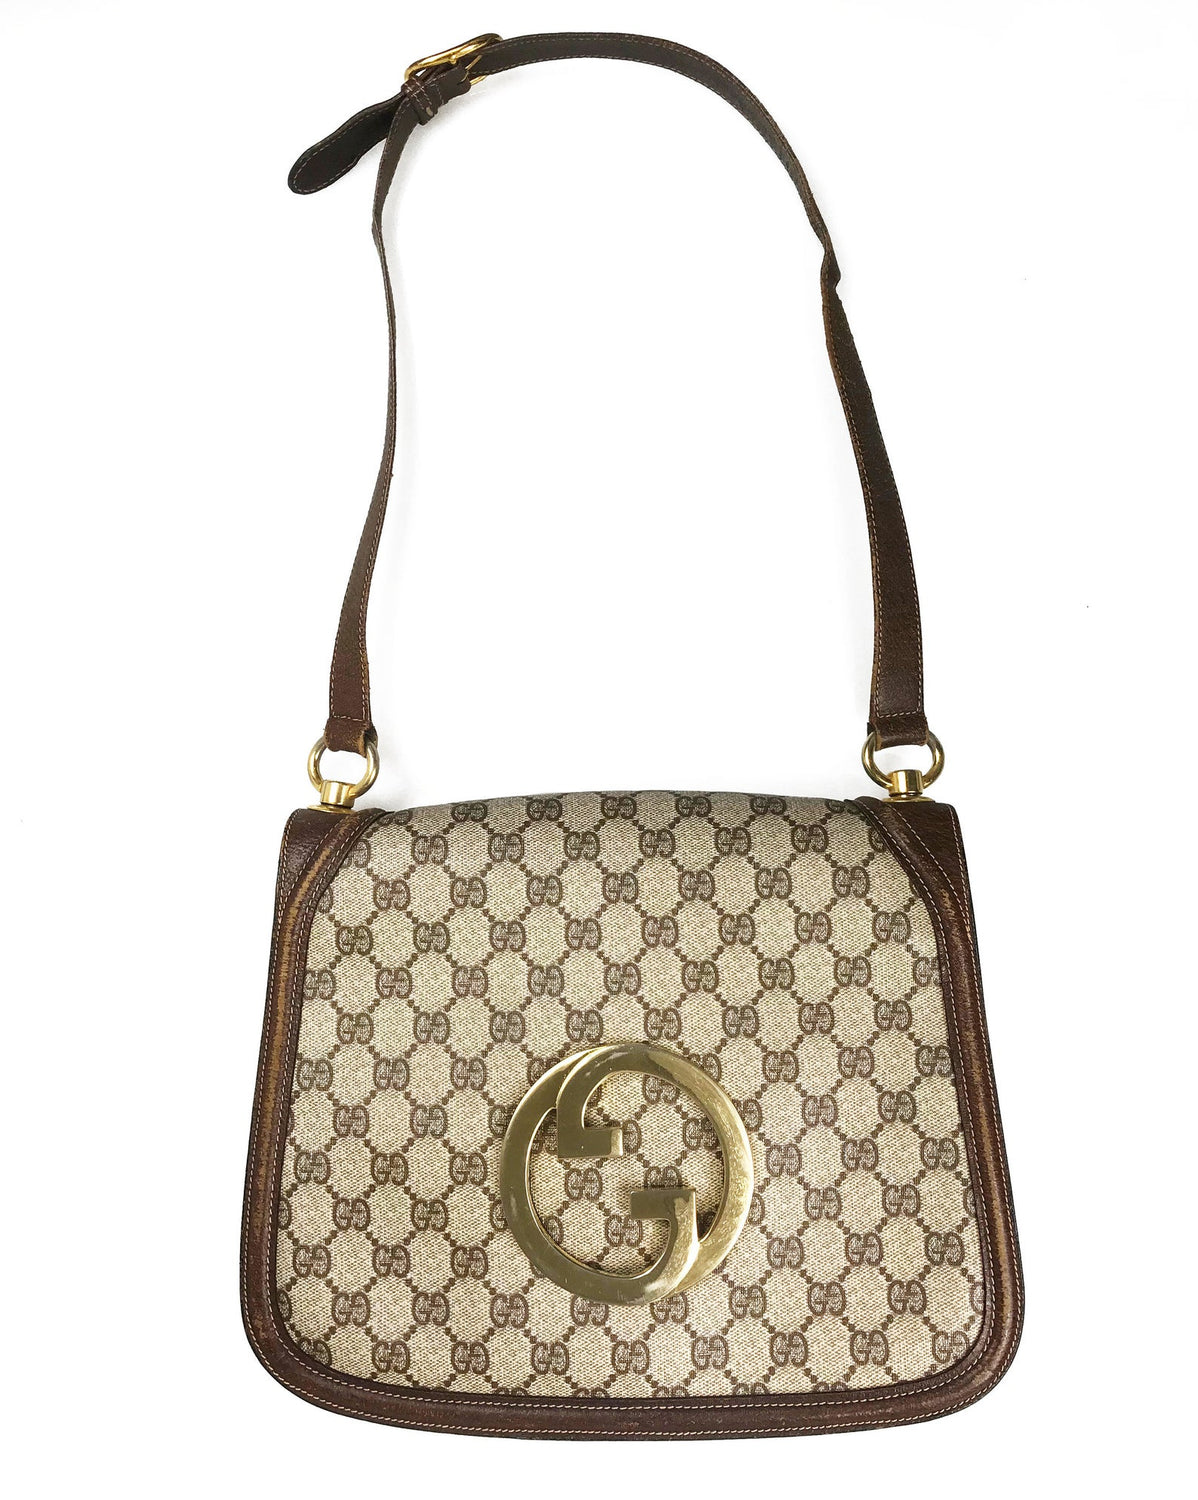 FRUIT Vintage Gucci 1973 Blondie logo monogram canvas shoulder bag features a very large front double G Gucci Logo at the front, a classic flap closure, brown leather trim and internal zipper pocket.